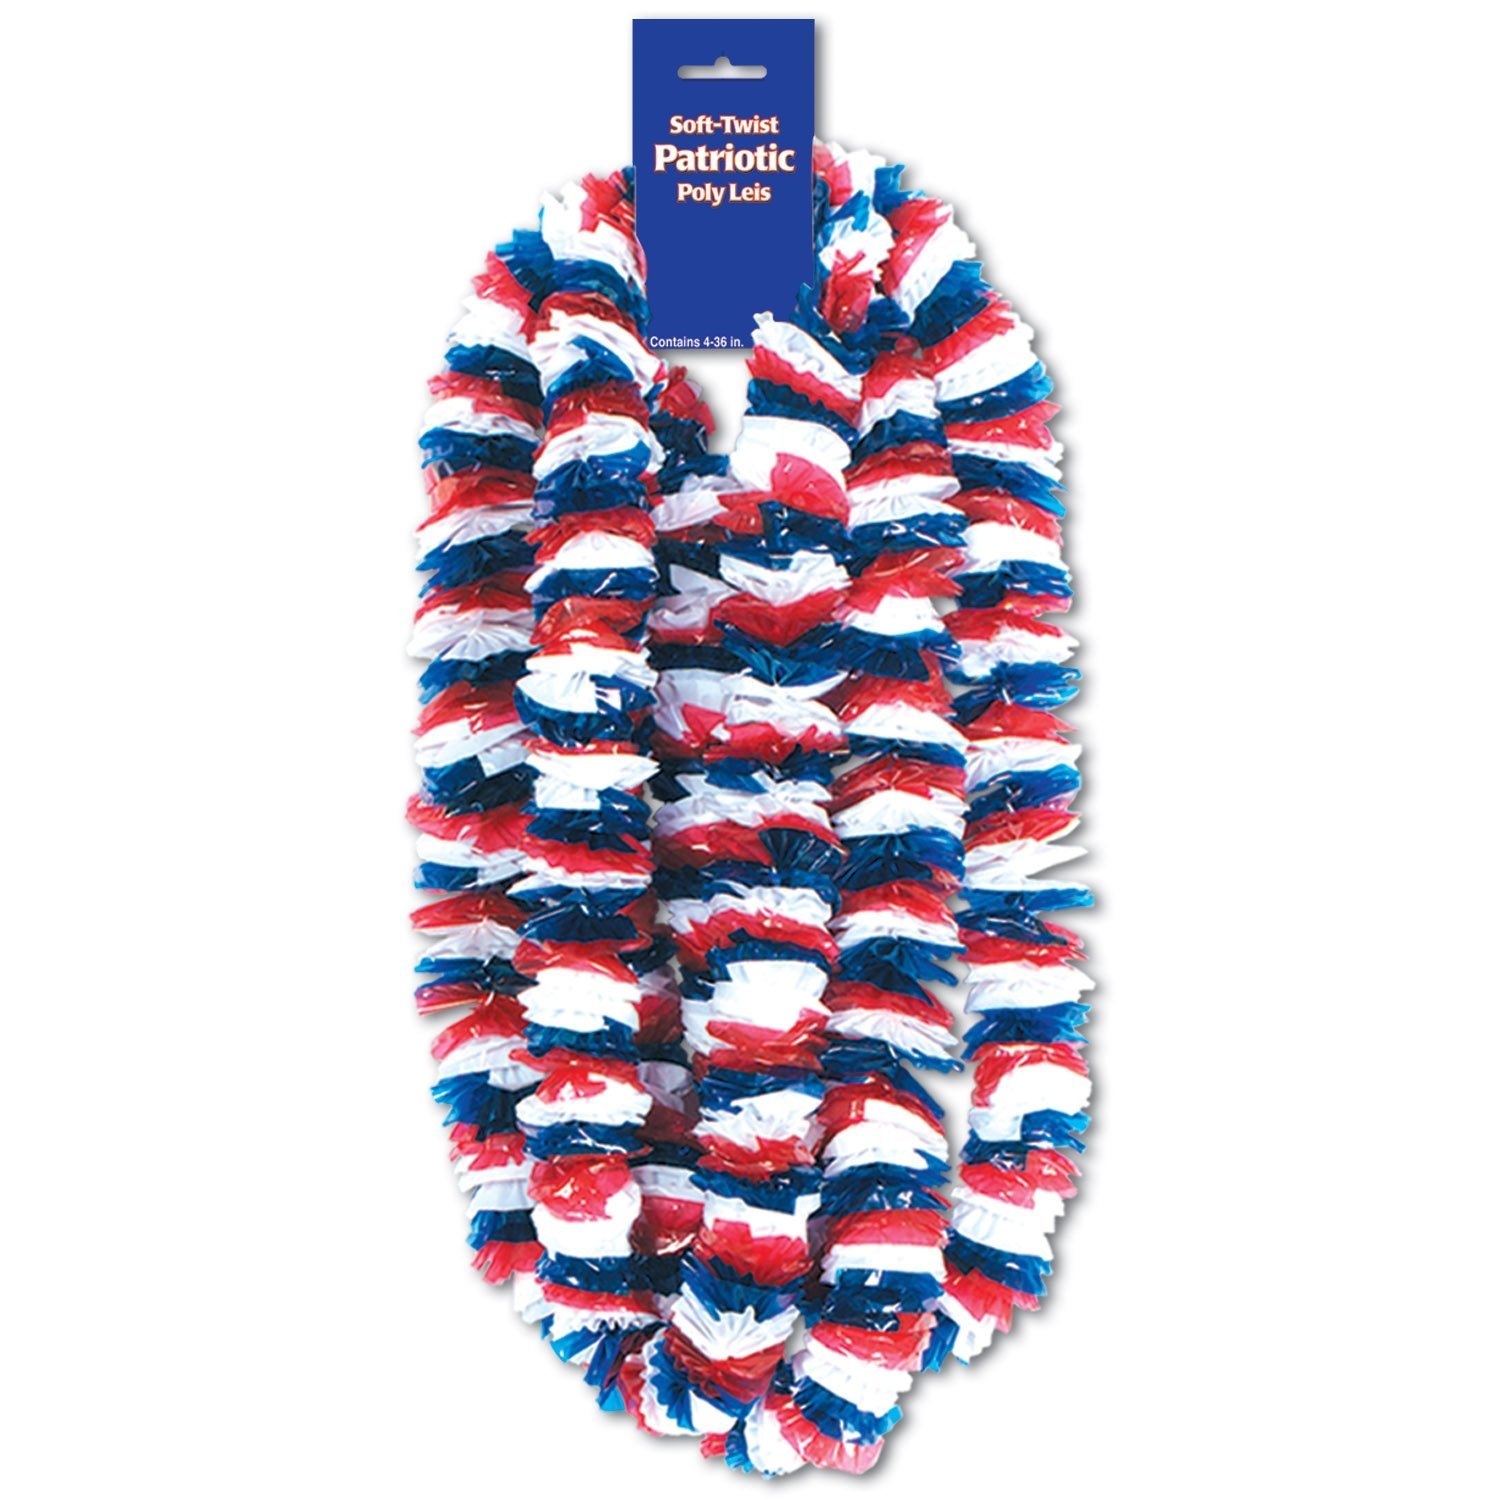 Beistle 66367-4PK 48-Pack Soft-Twist Patriotic Poly Leis Party Decor, 2-Inch by 36-Inch by Beistle